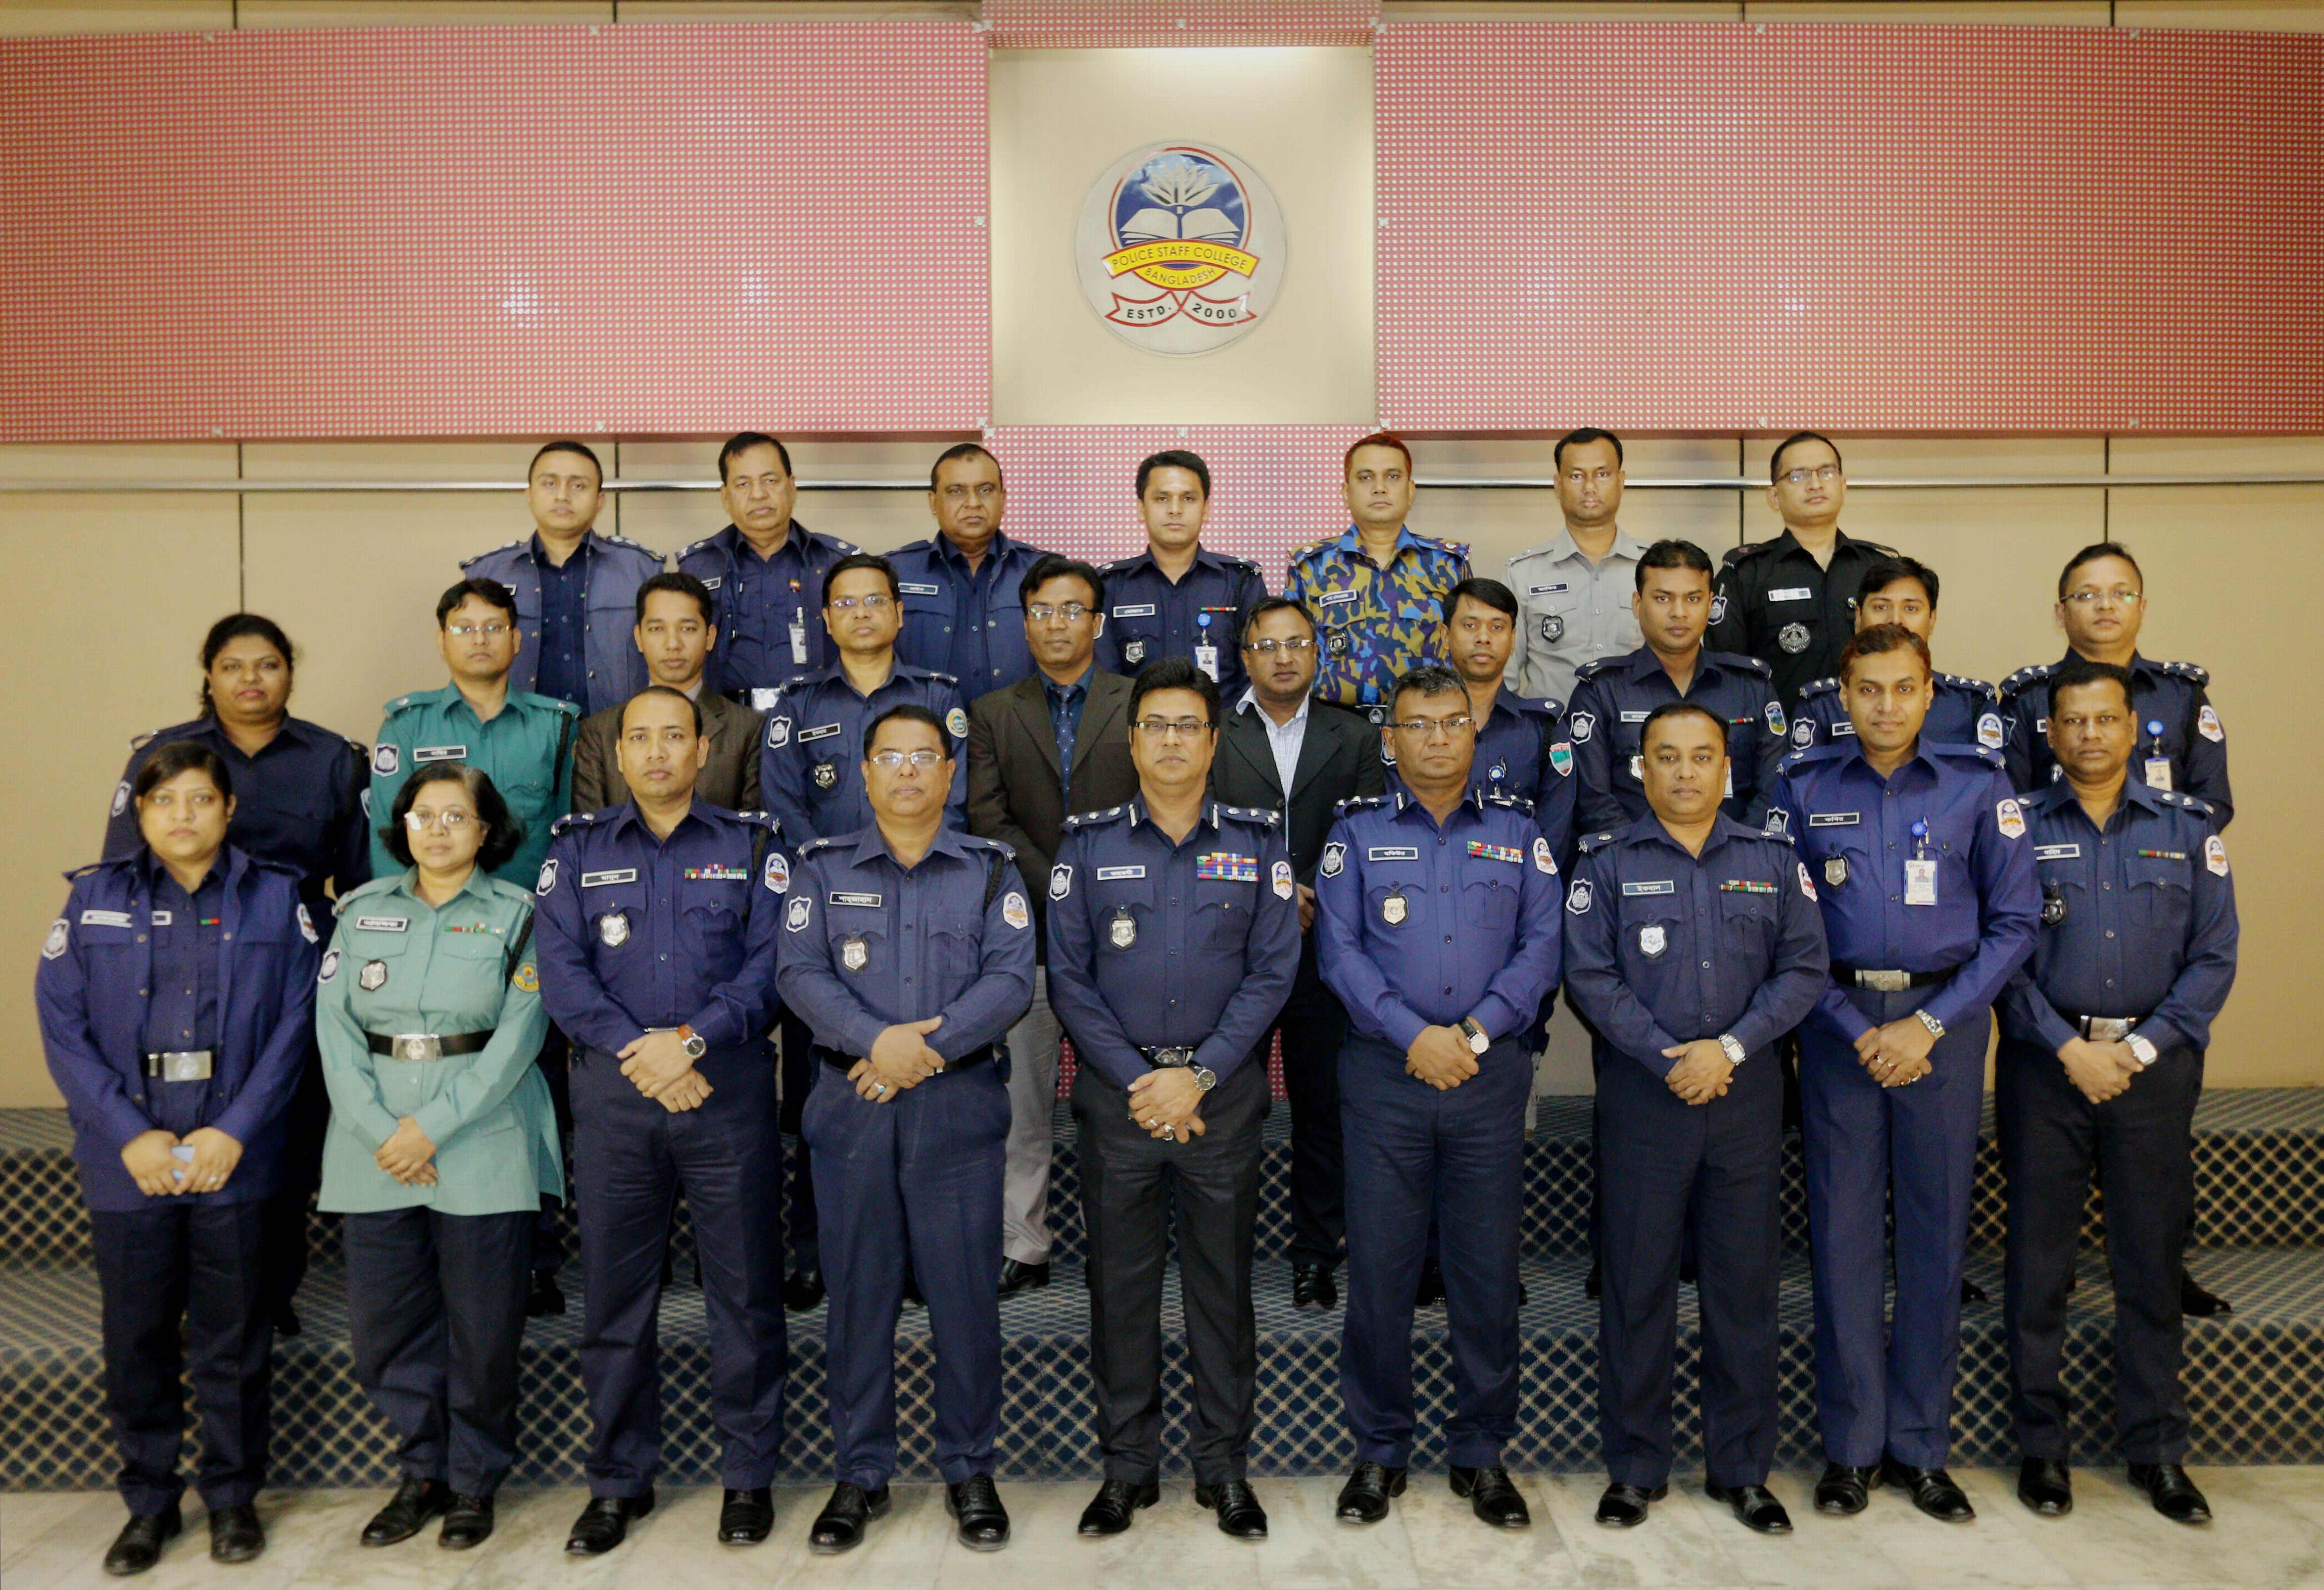 Participant of 32nd Police Financial Management Certificate Course.